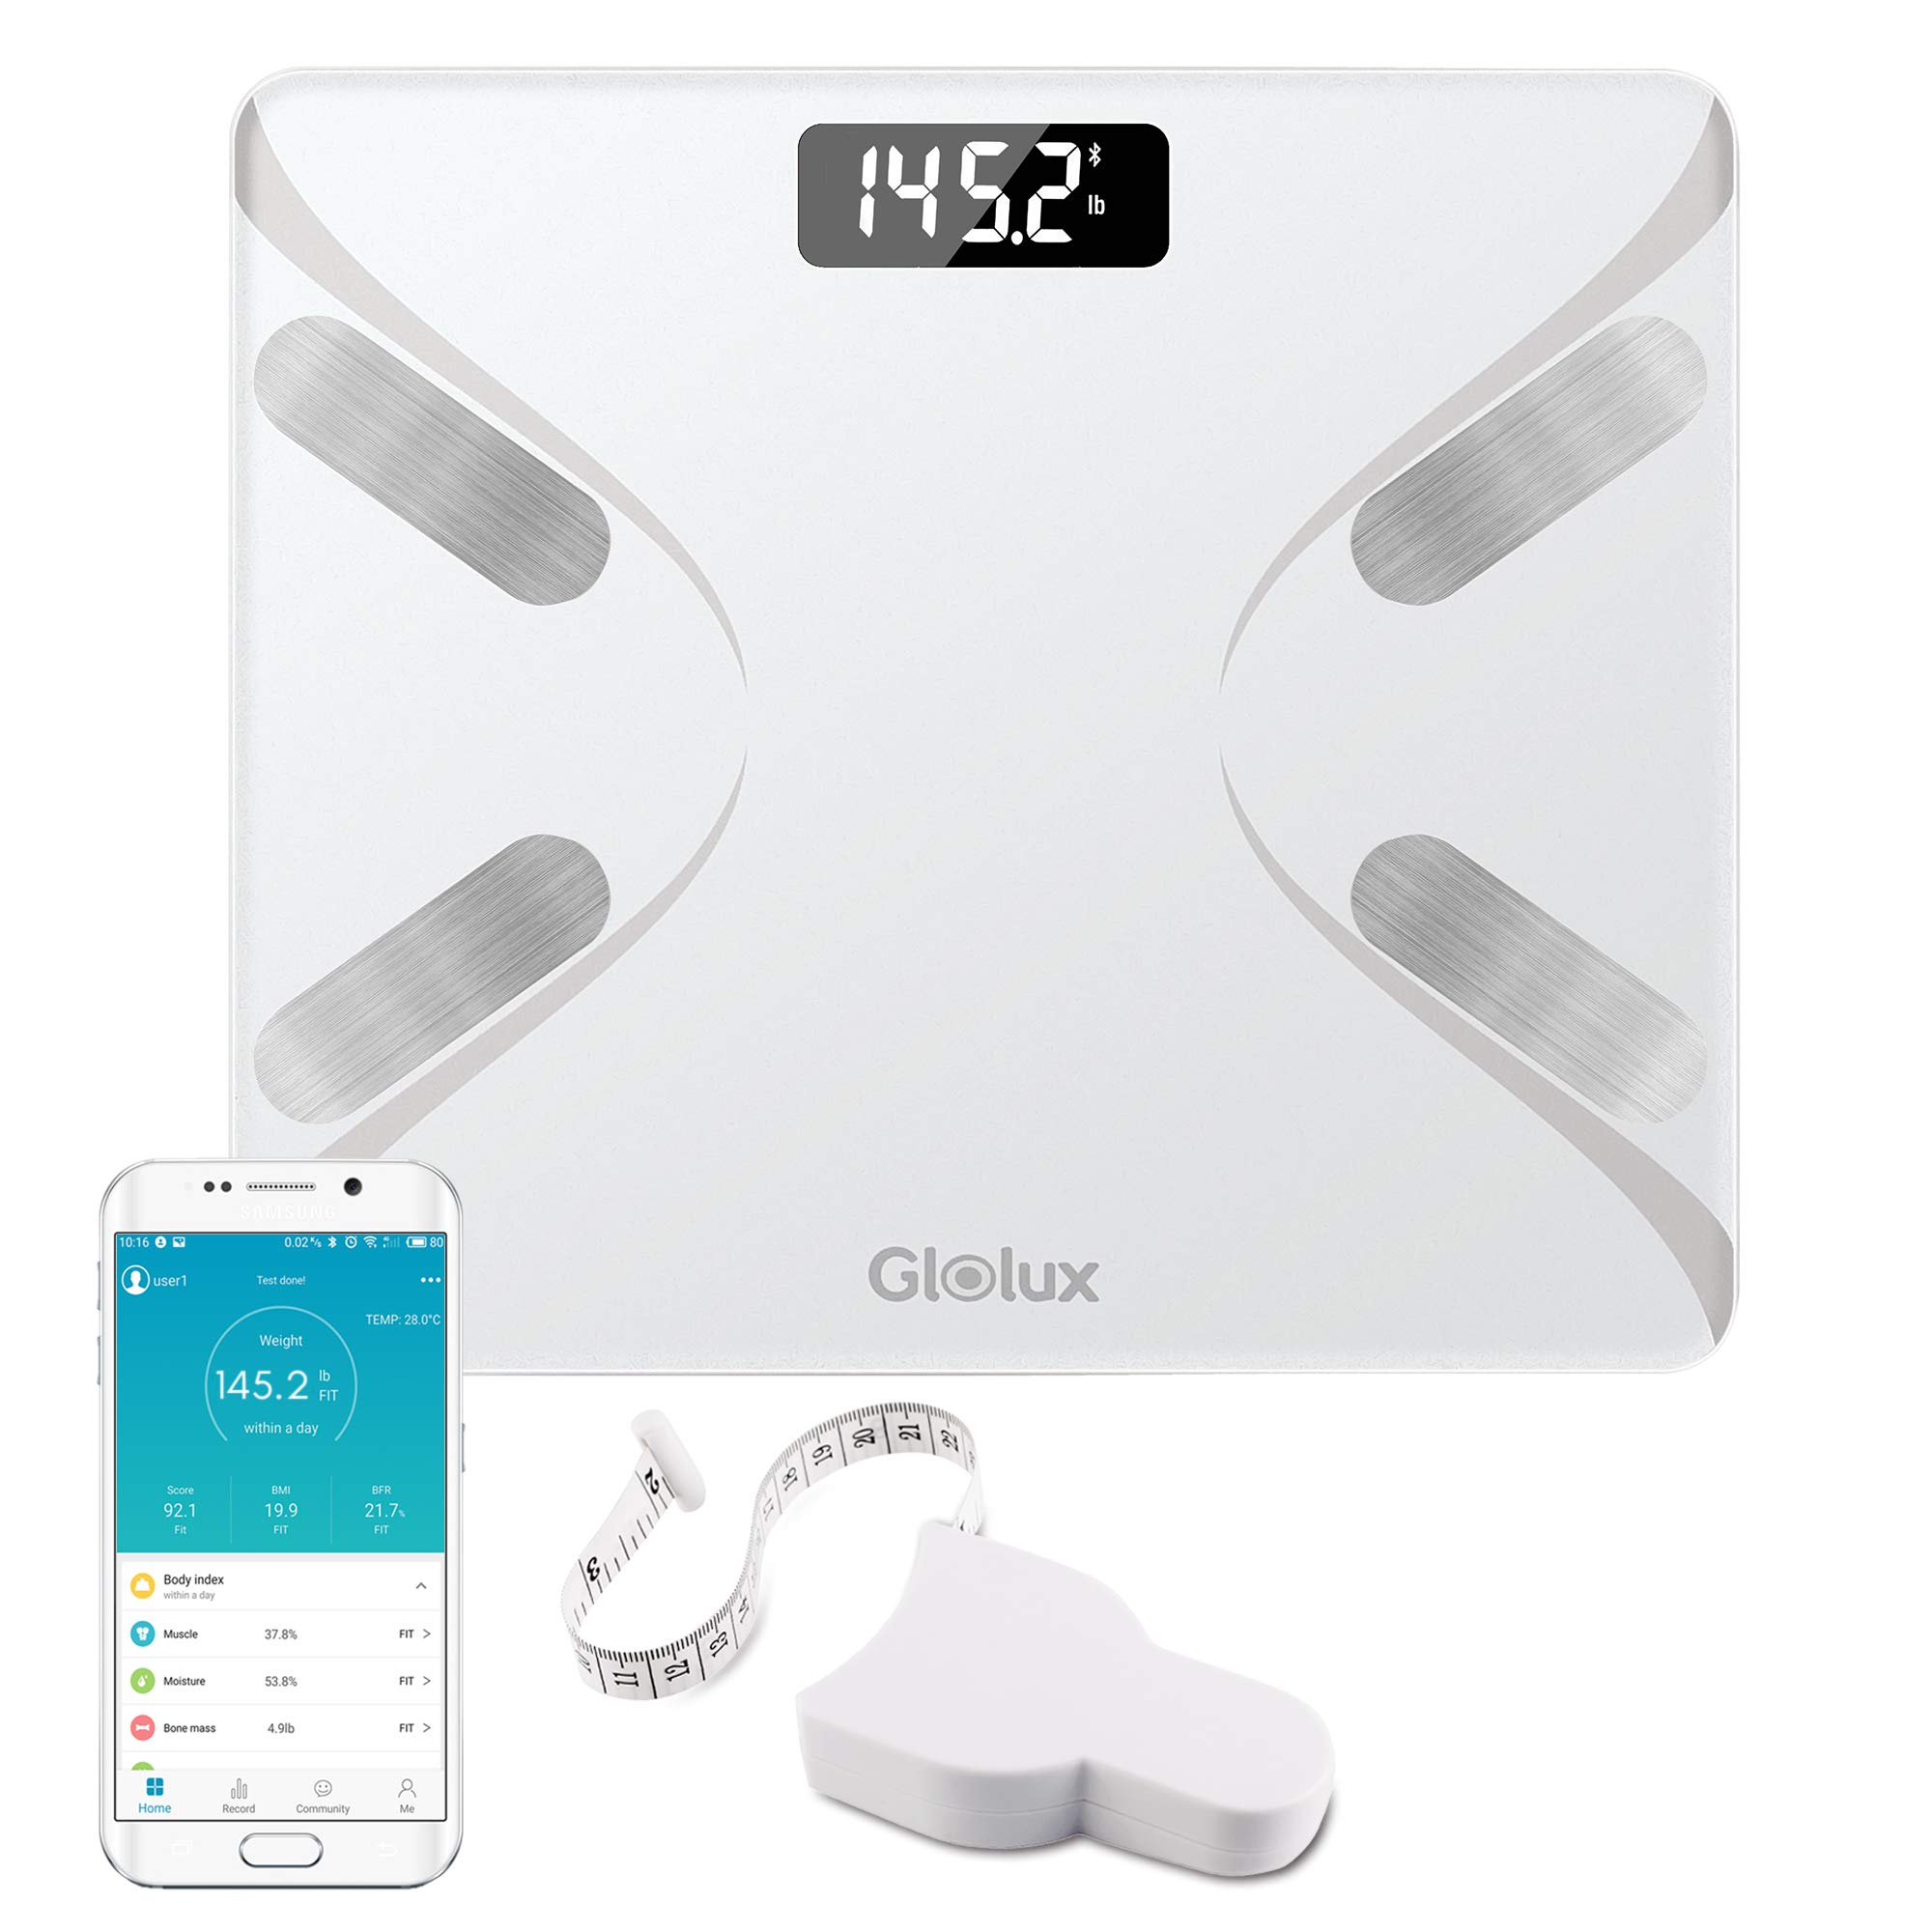 Glolux Smart Digital Weight and Body Fat Scale Bathroom Scale Body Fat and Composition Analyzer with Retractable Body Measuring Tape